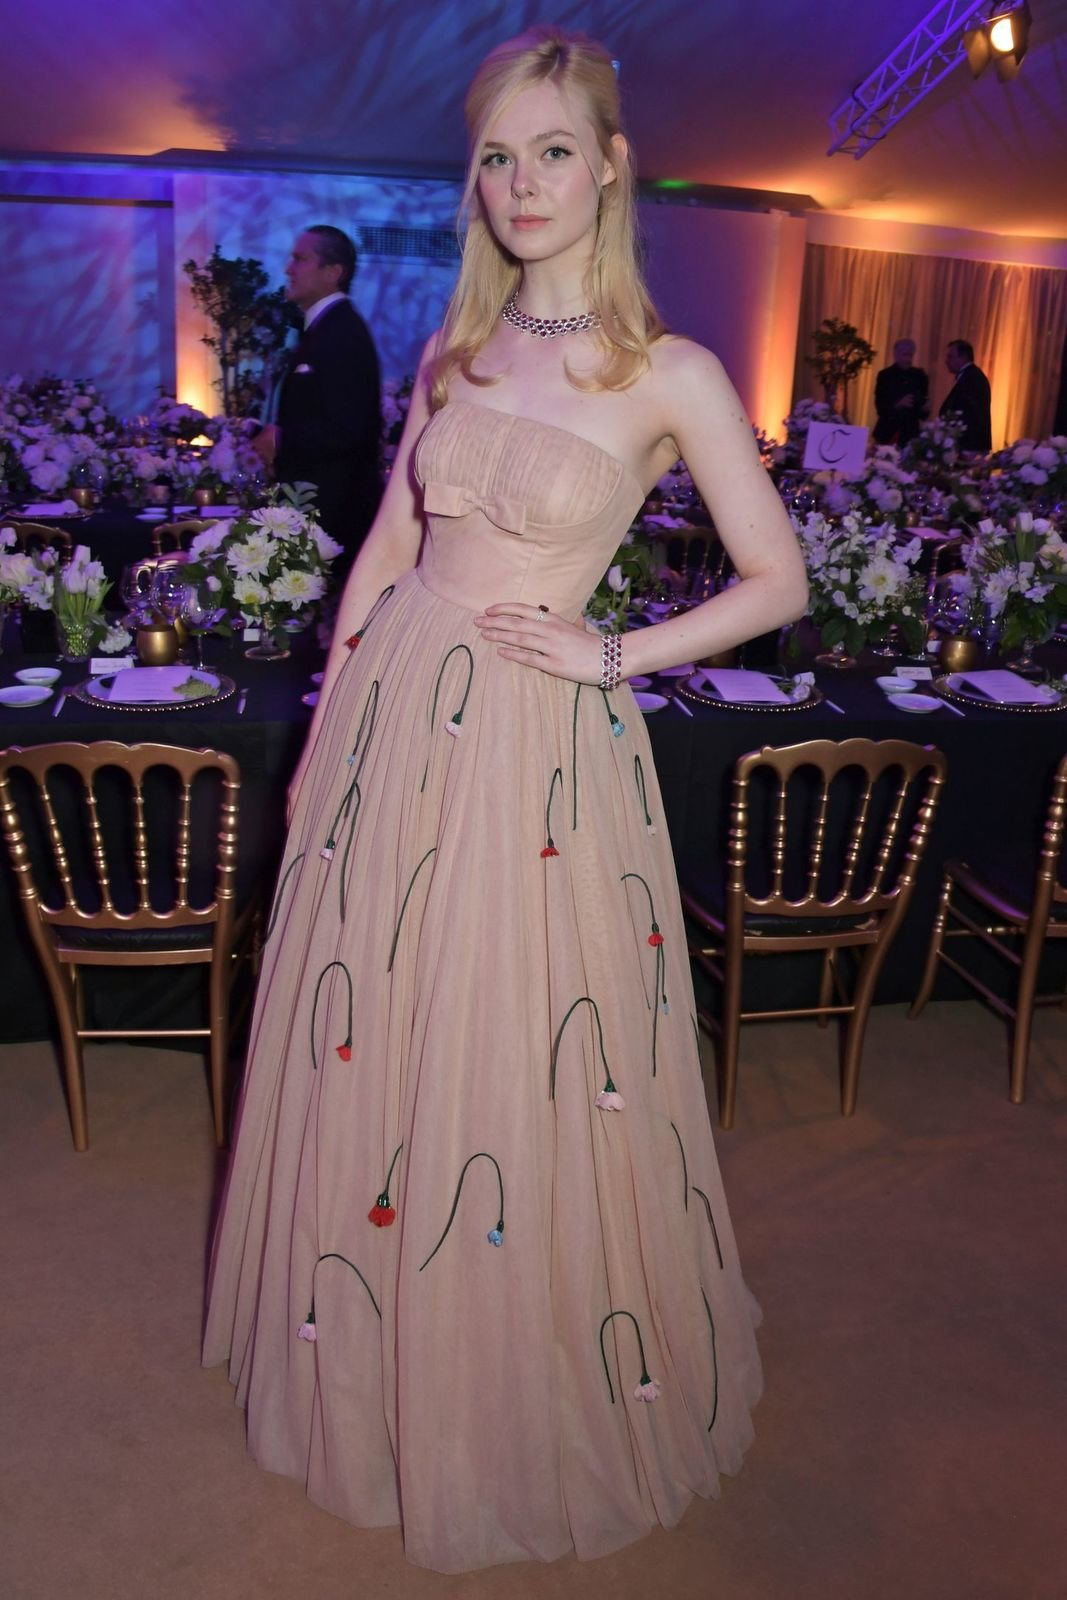 elle fanning attends the official trophee chopard dinner as news photo 1145311755 1558454478